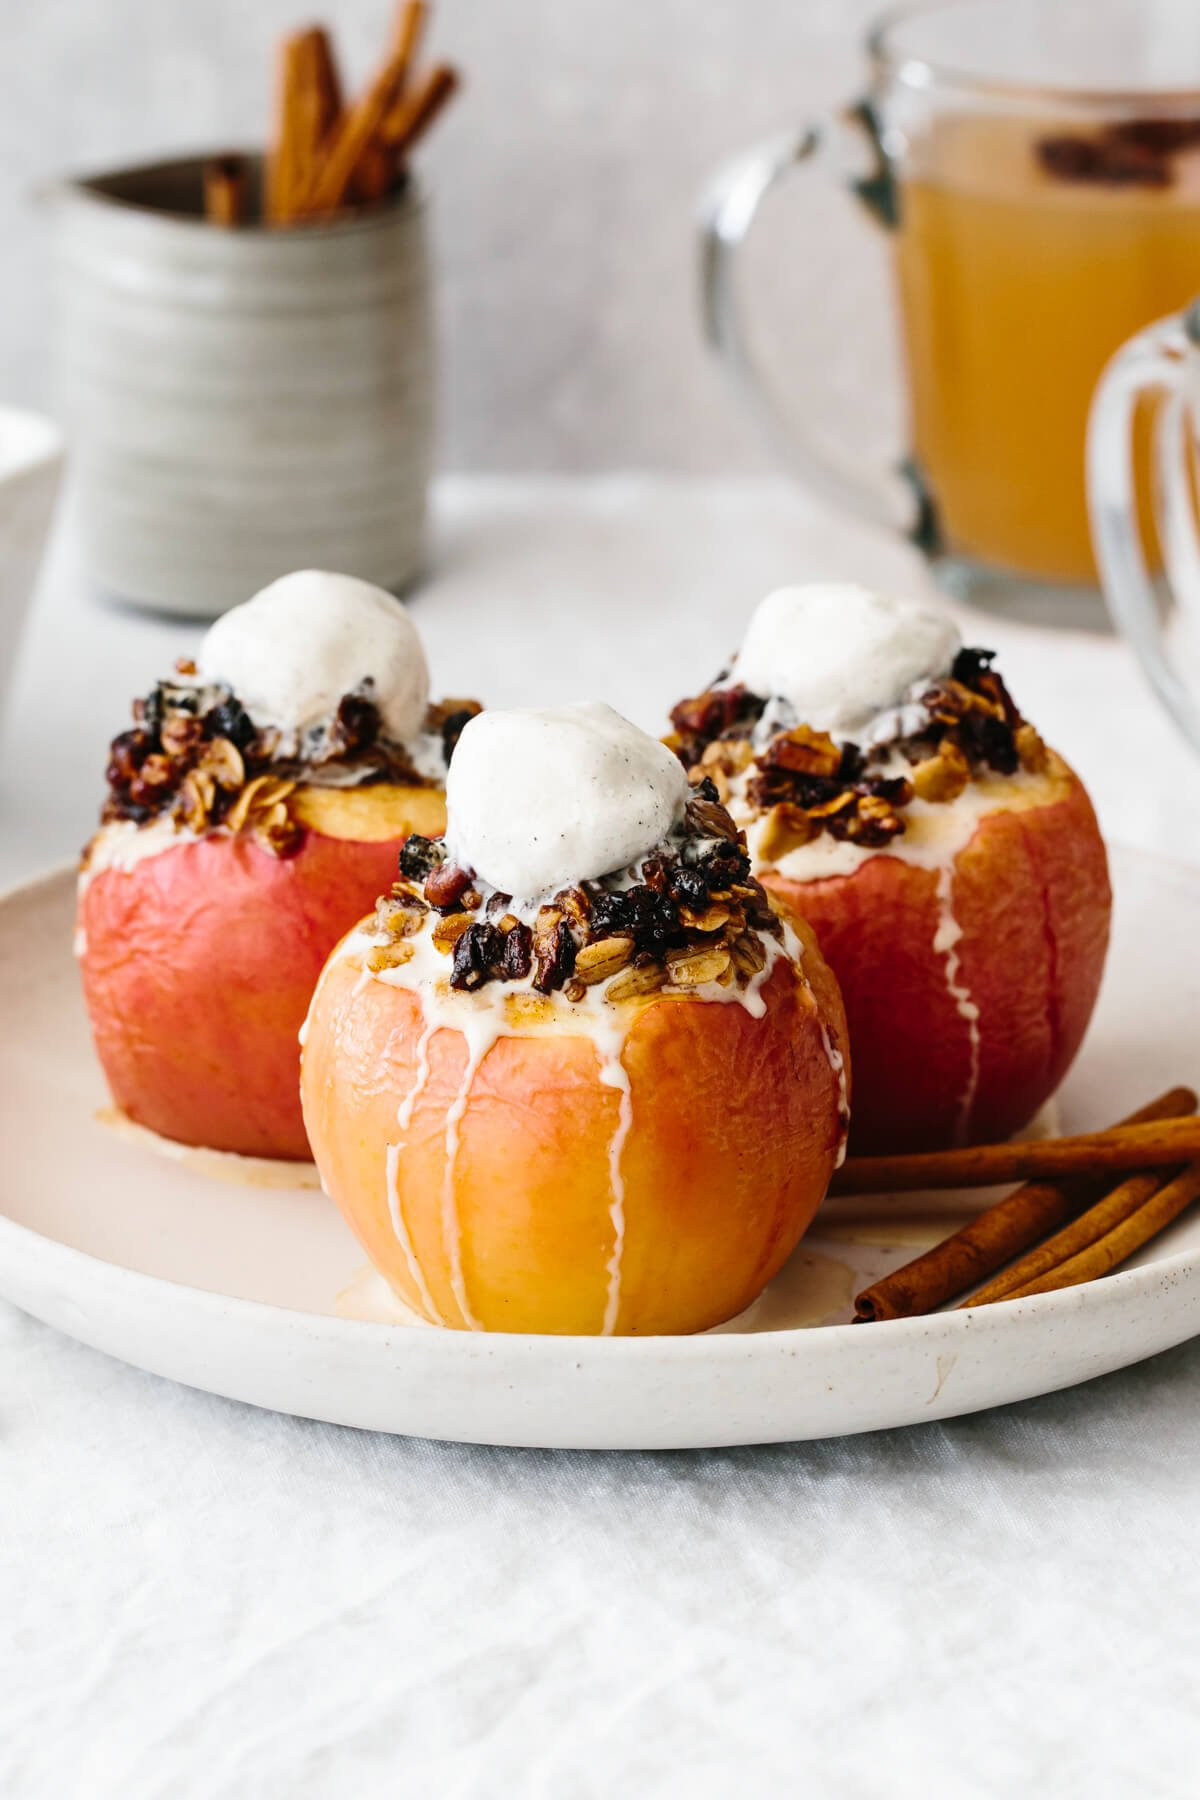 Three baked apples on a plate with melted ice cream on top.